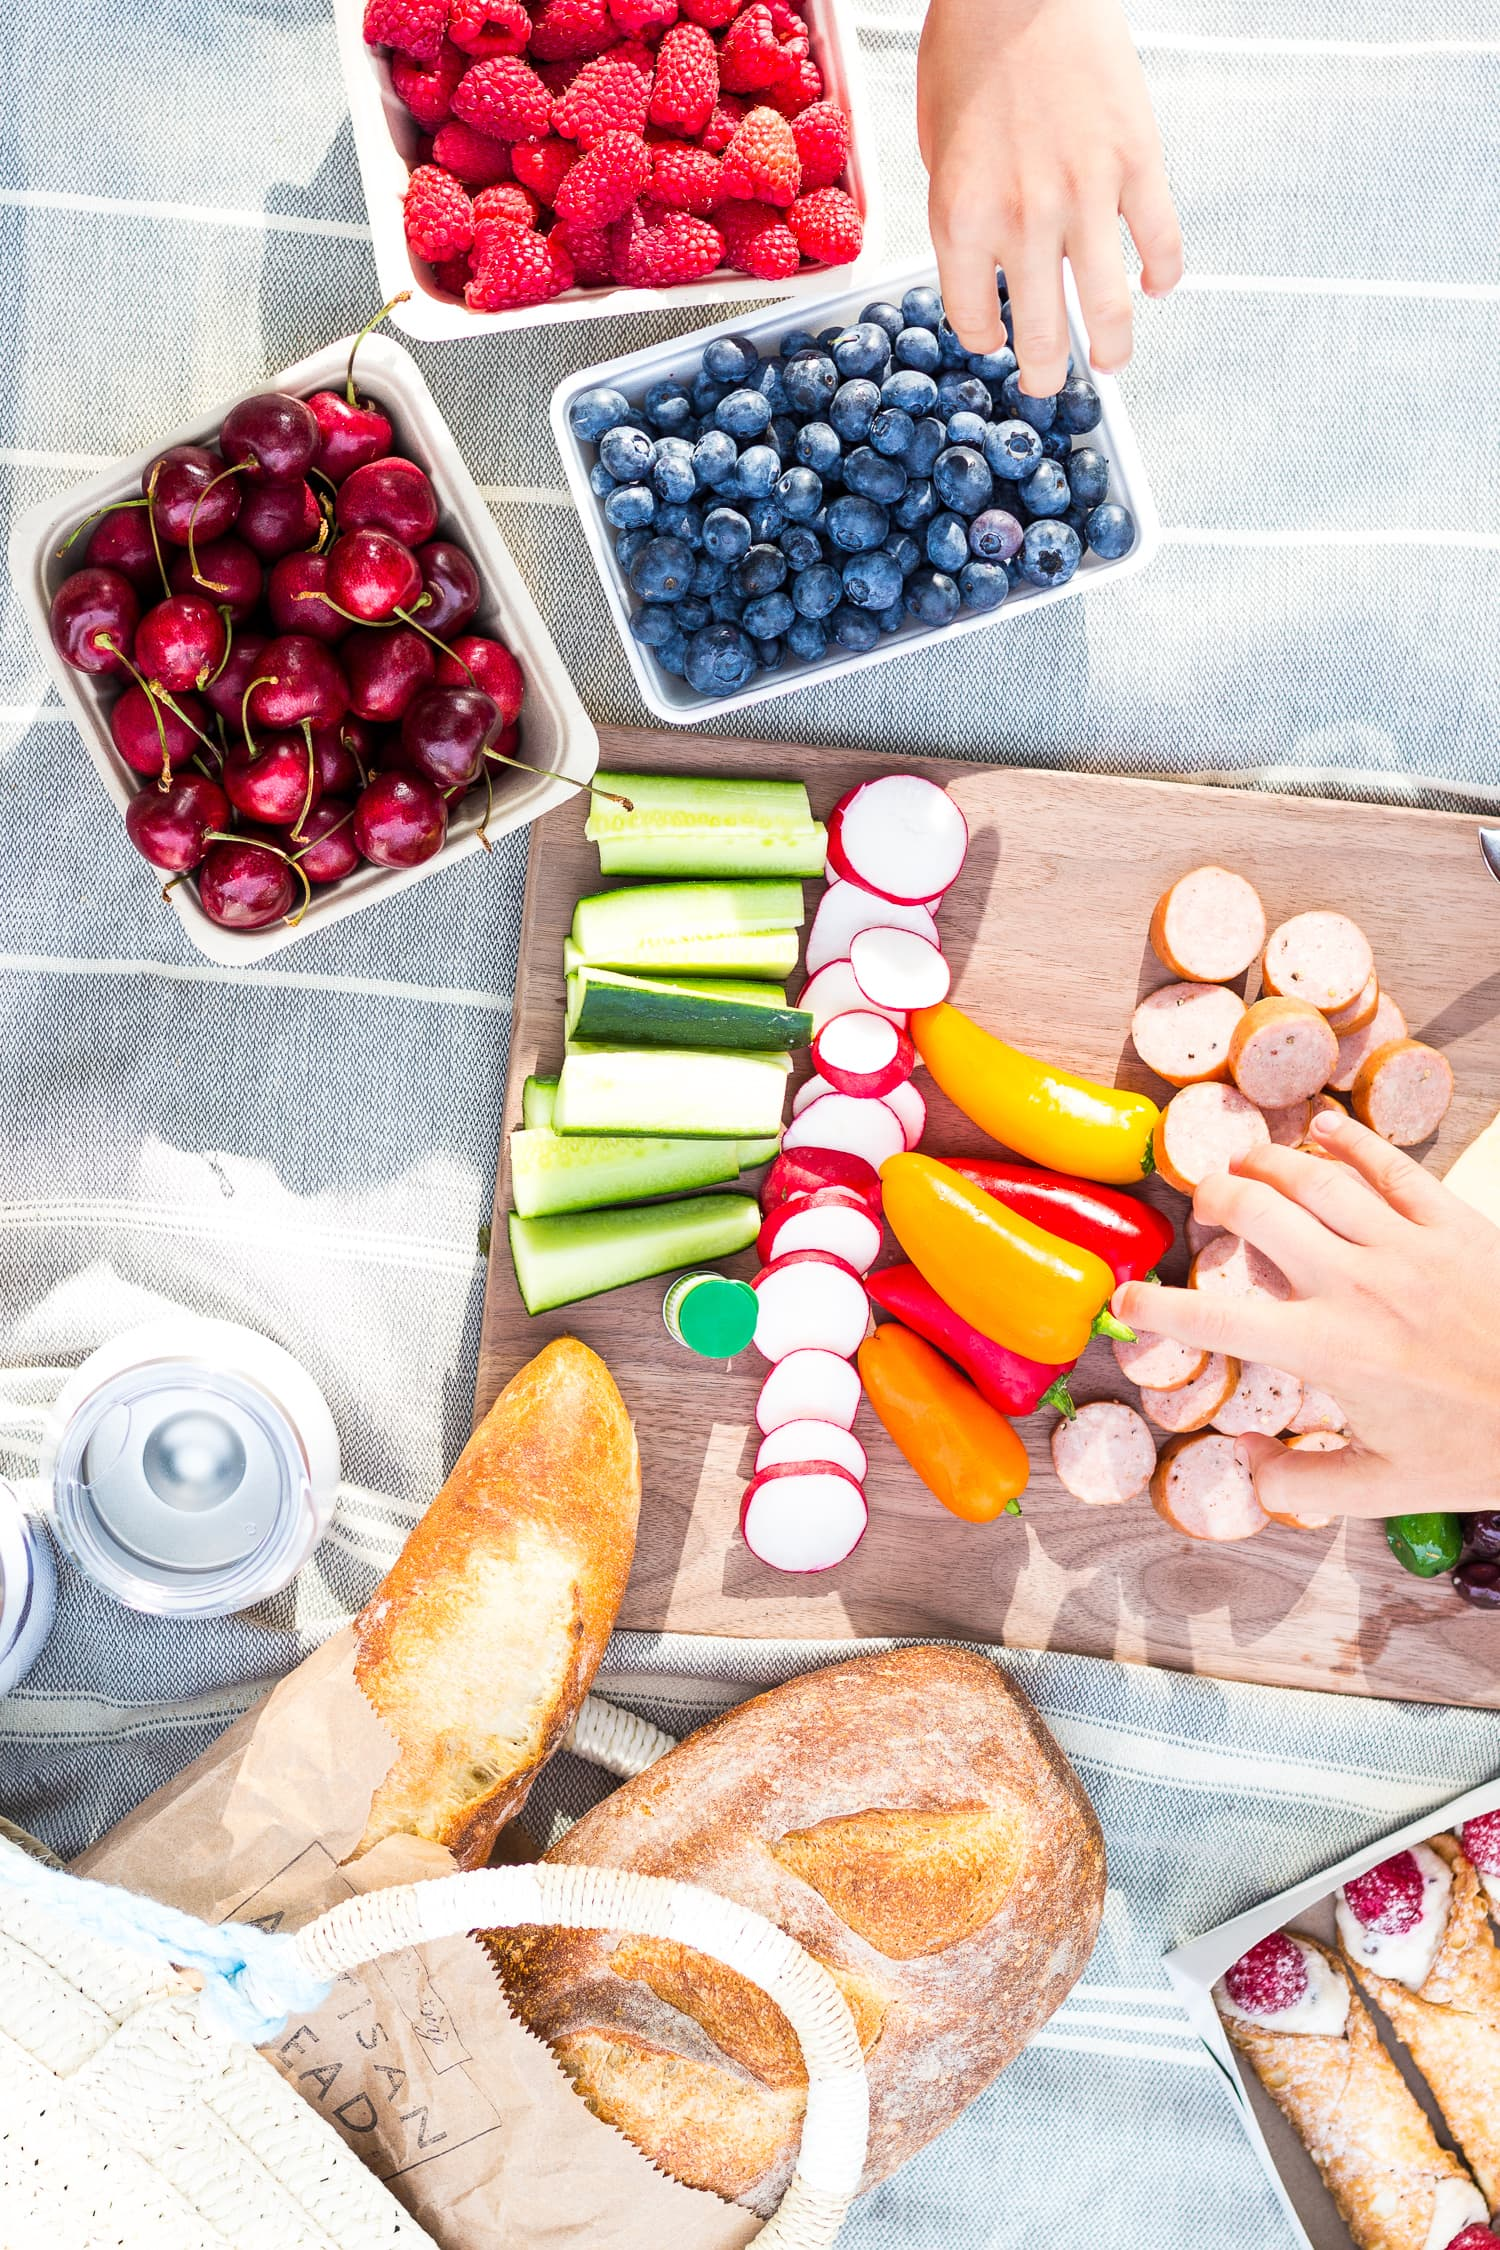 Overhead photo of a picnic set up on a blanket with two childrens hands reaching in.